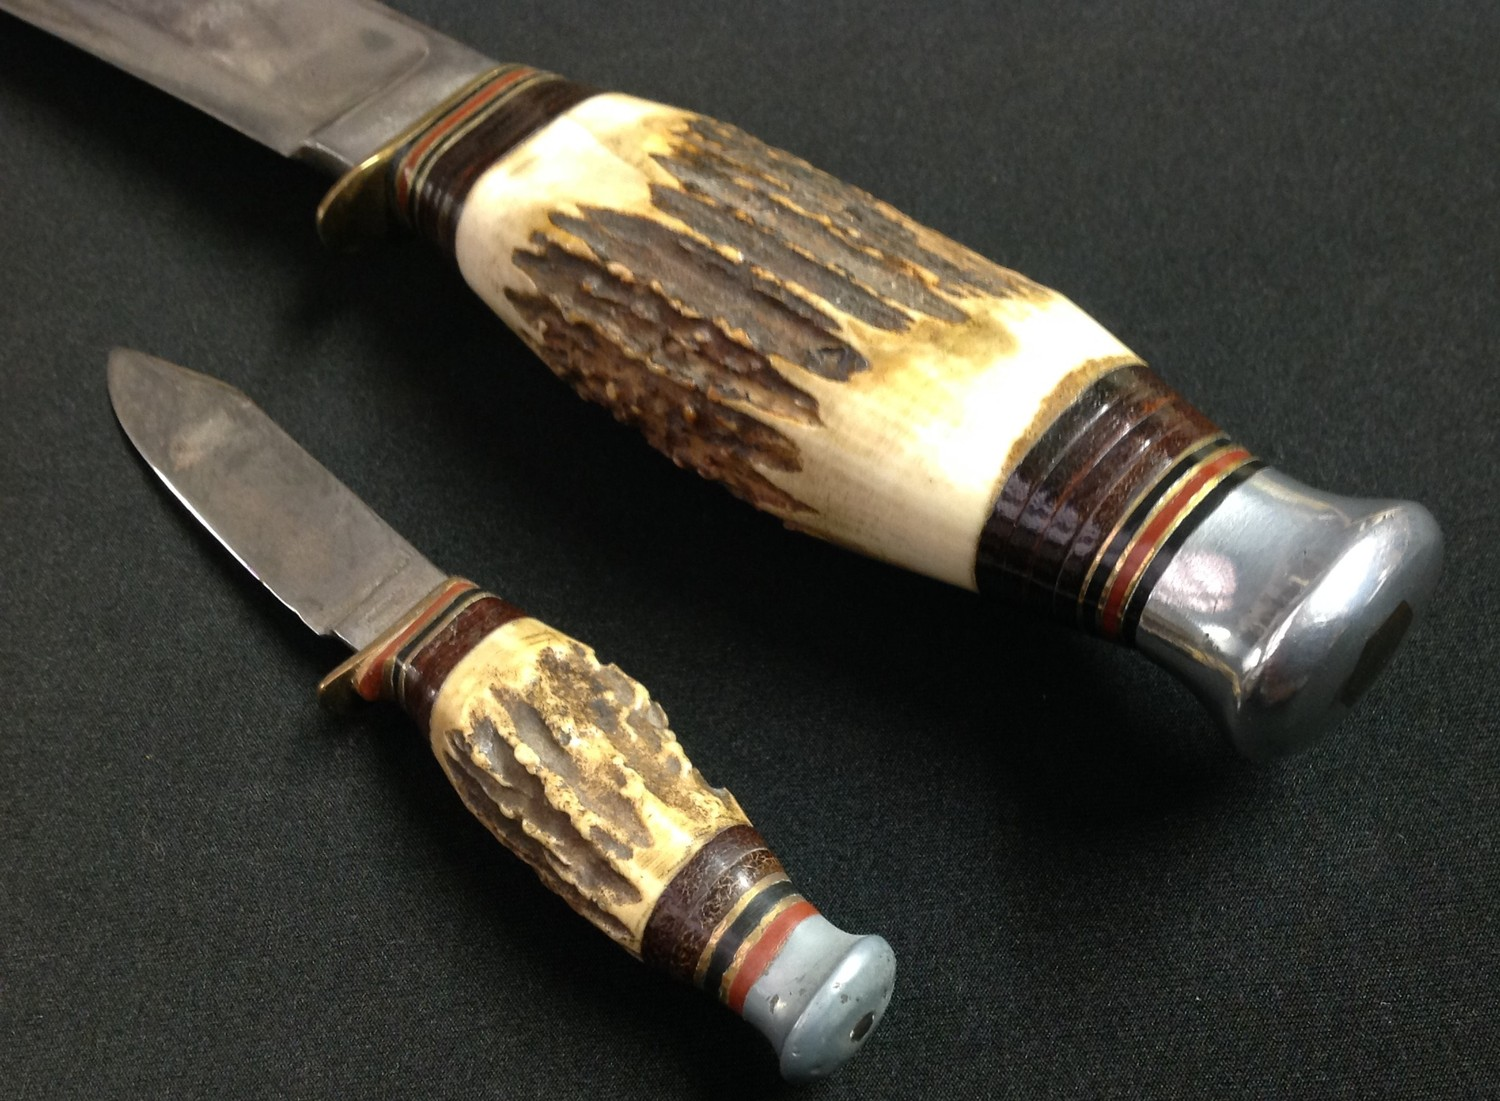 """Hunting Knife with Bowie style blade with fuller 199mm in length maker marked """"William Rodgers I Cut - Image 5 of 5"""